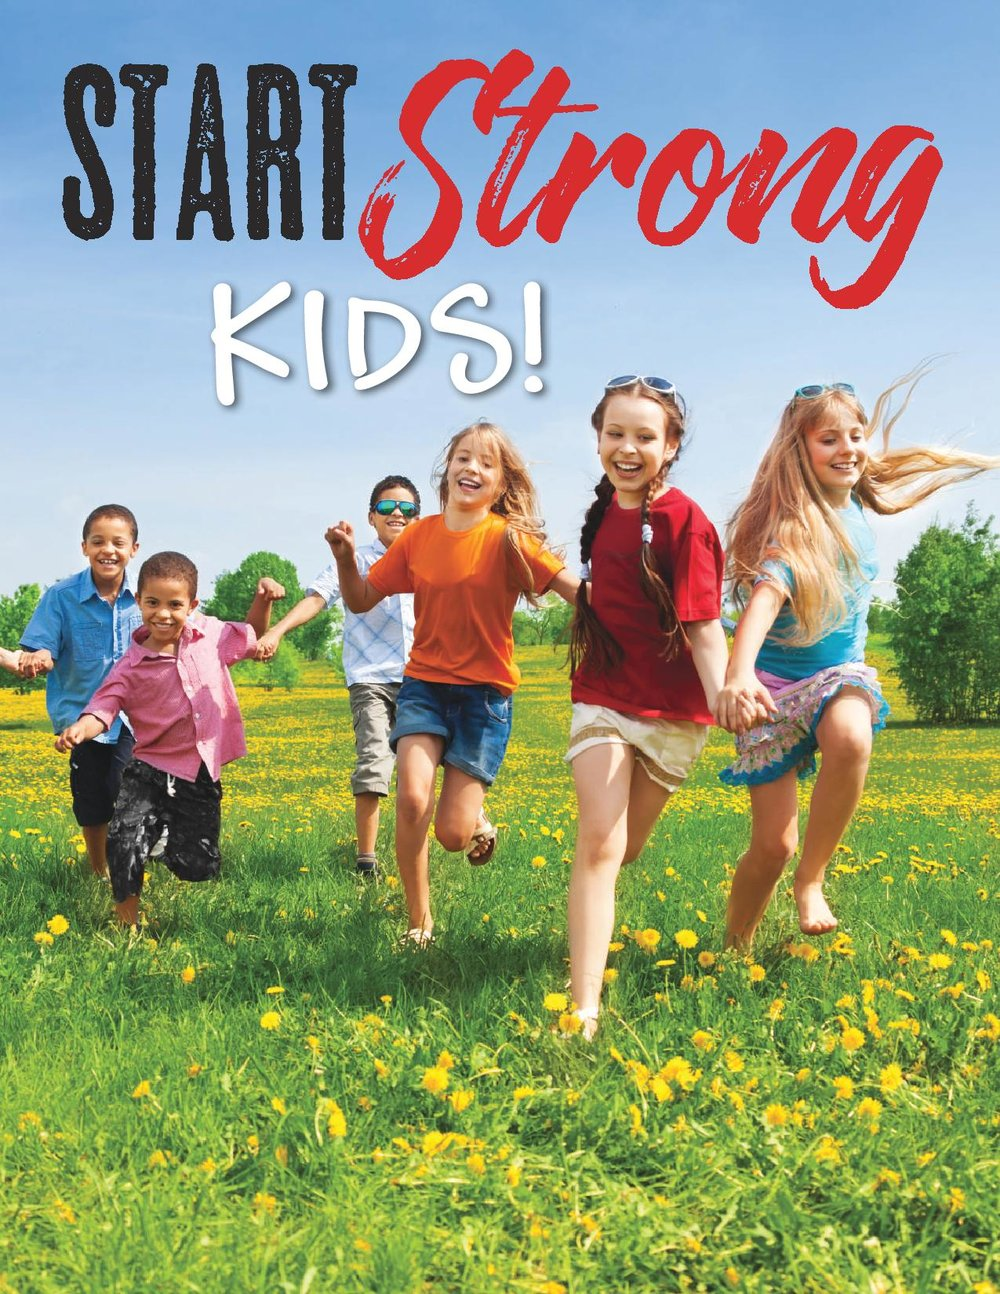 start_strong_kids.compressed-page-001.jpg